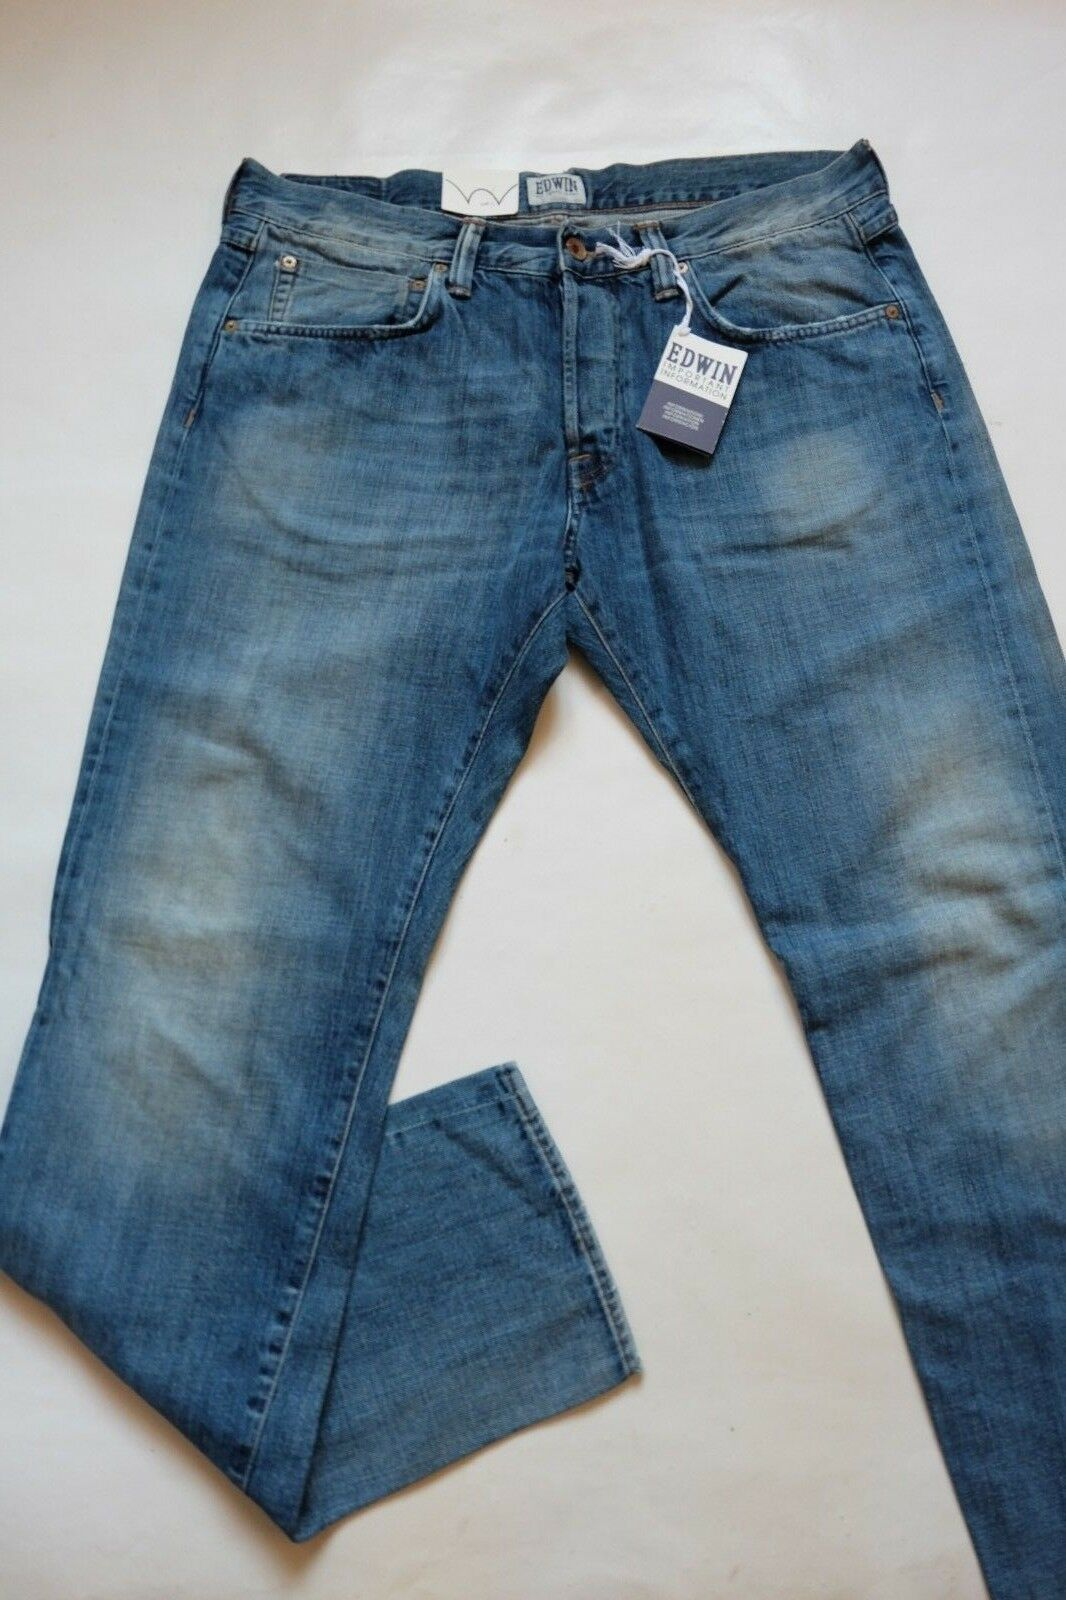 JEANS EDWIN HOMME ED 55 RELAXED TAPERED  (white listed-G15)  W30 L32 VAL